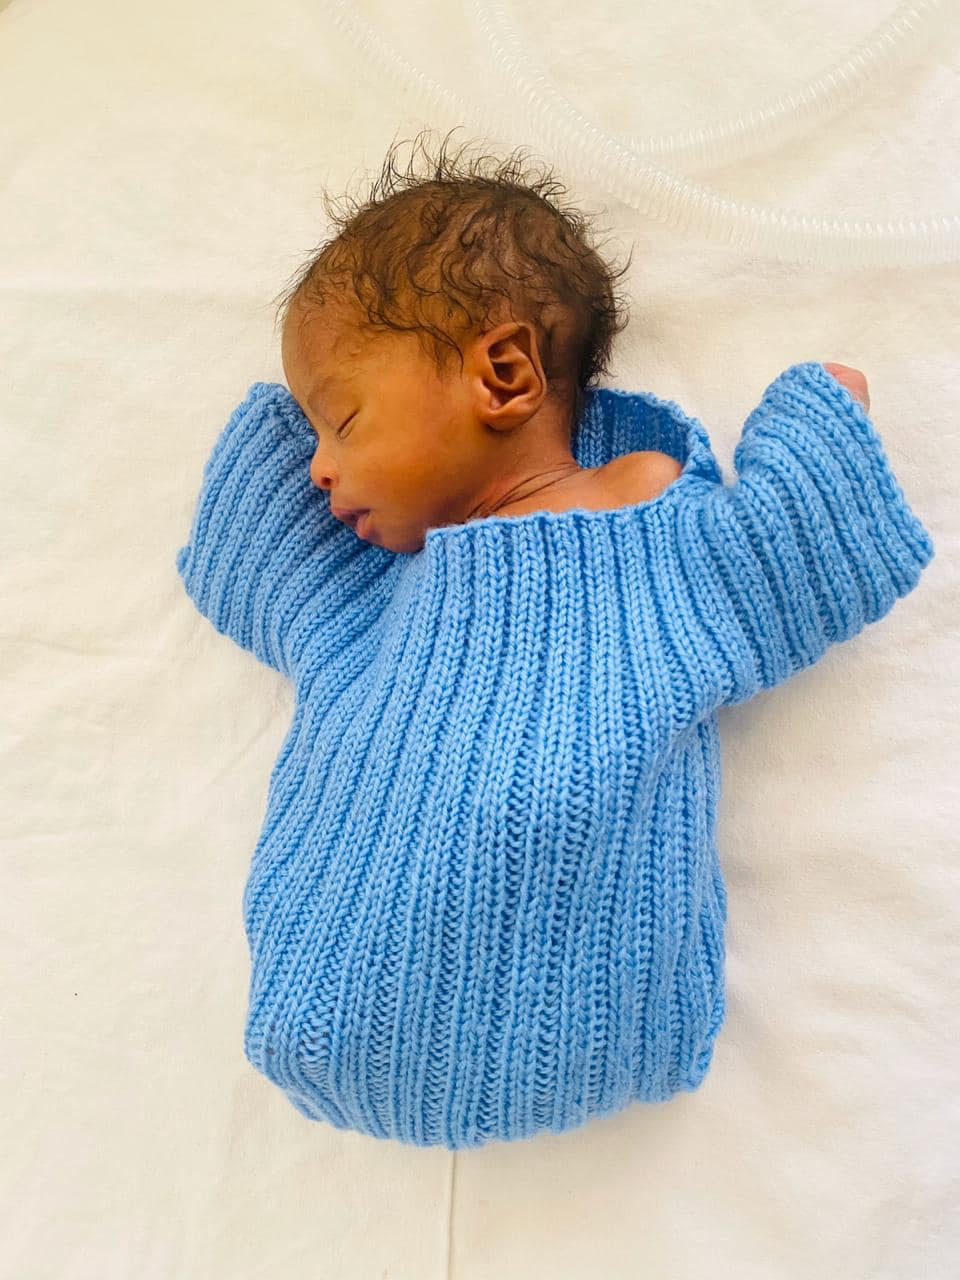 A premature baby, well covered in a baby wool knitted sweather